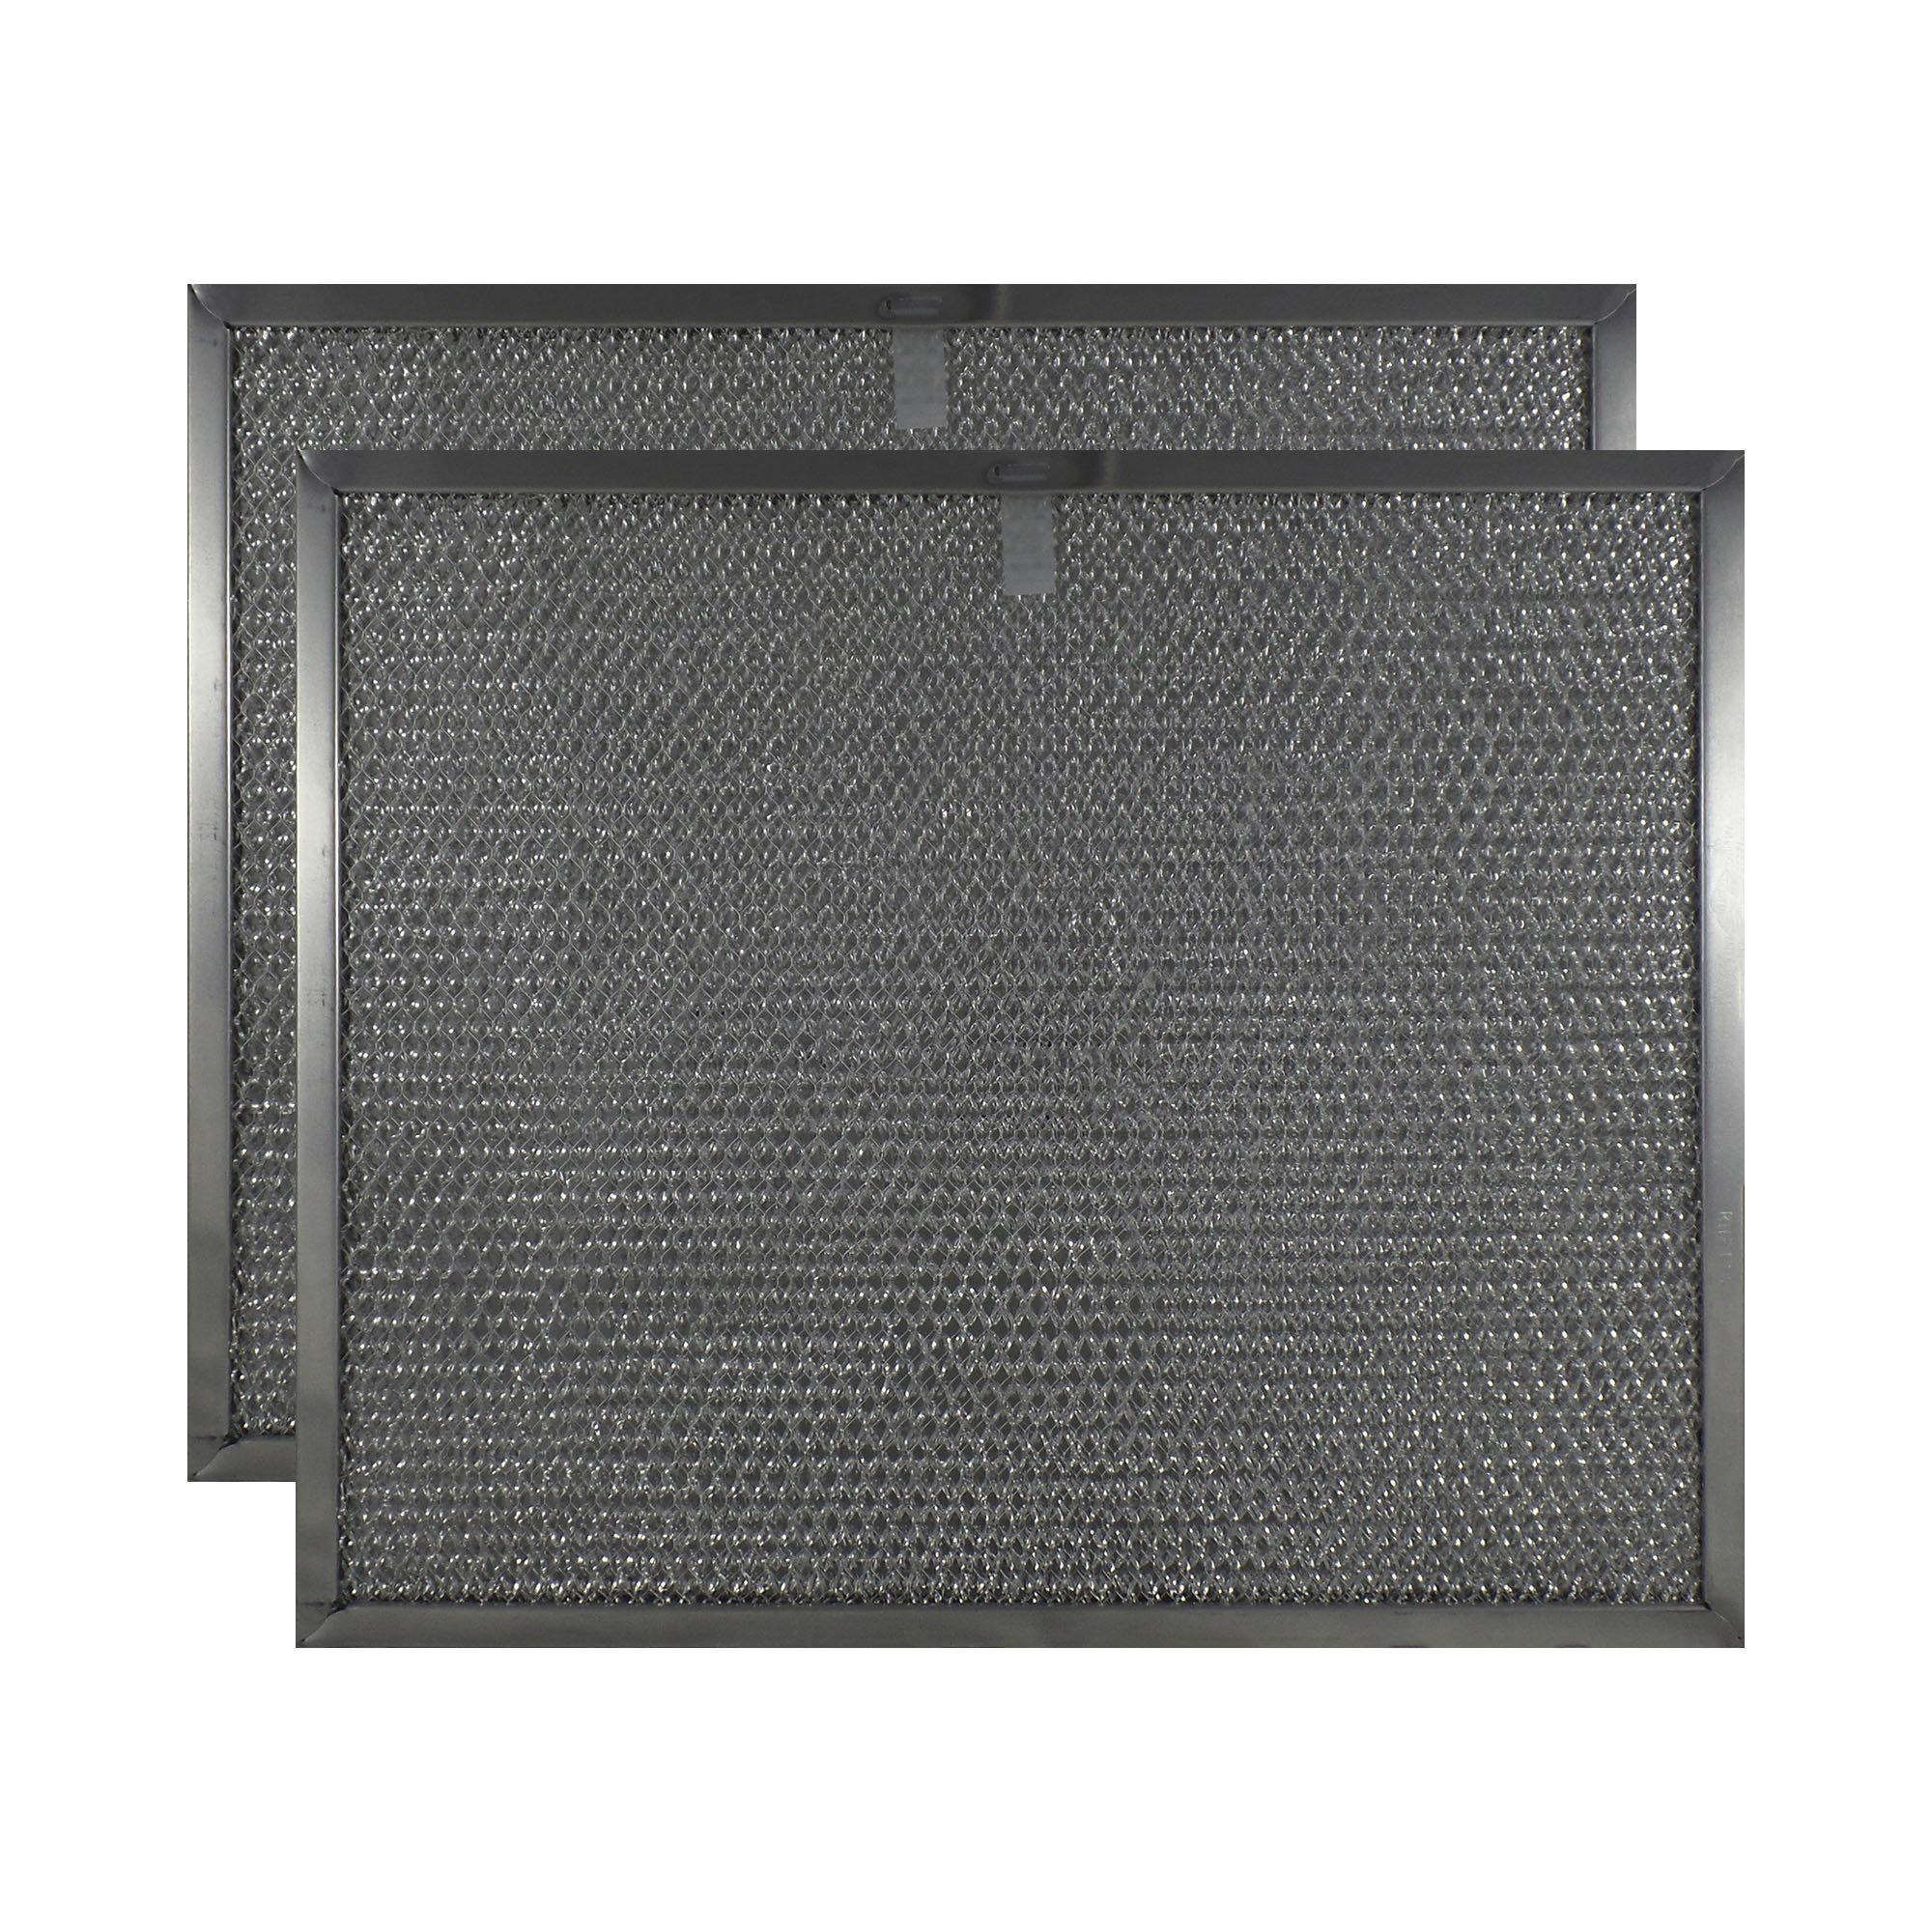 2 PACK Air Filter Factory 11-7/8 X 14-11/32 X 3/8 Range Hood Aluminum Grease Filters AFF198-M